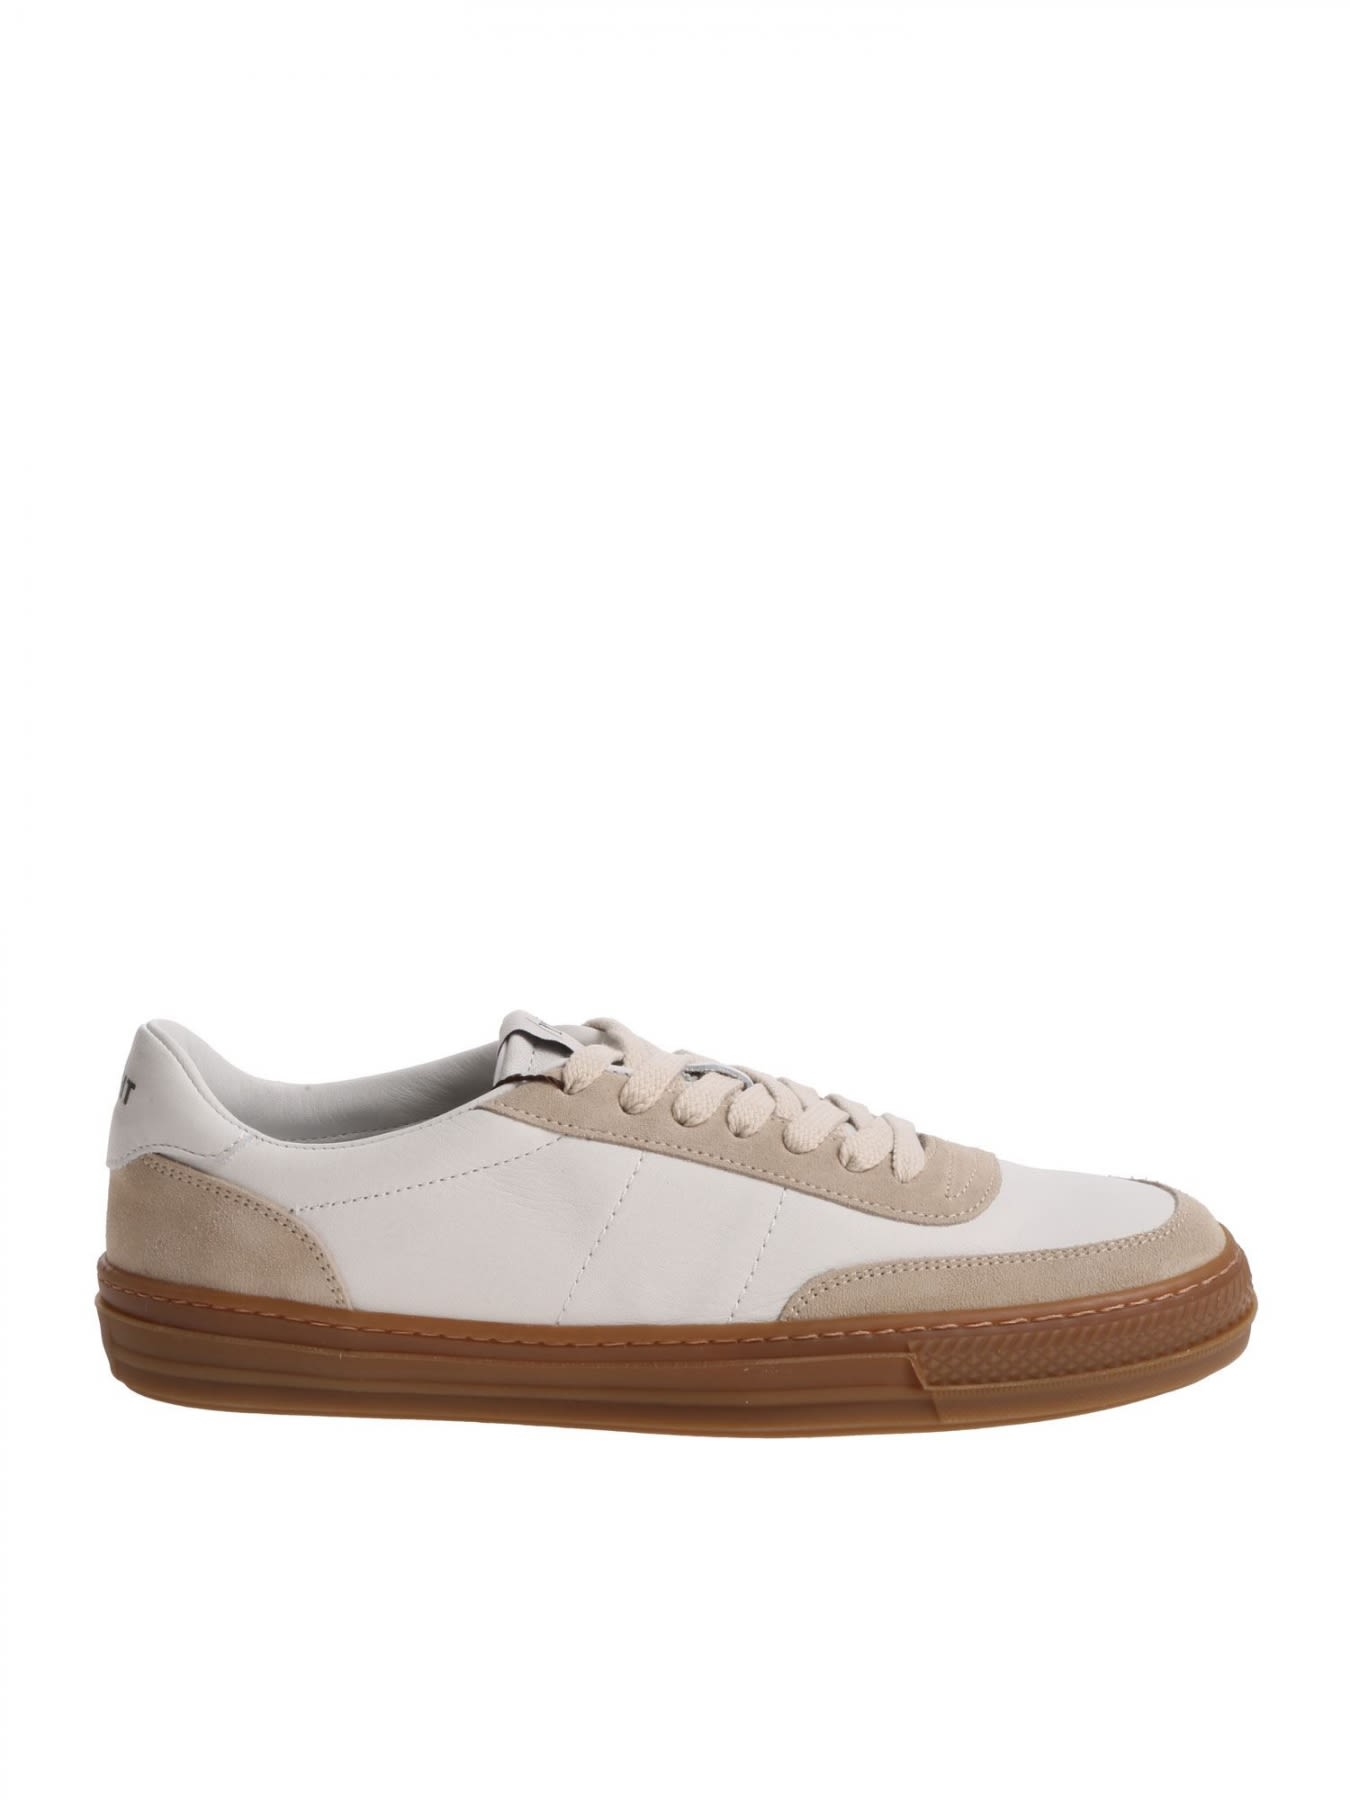 ROV Leather Sneaker in White